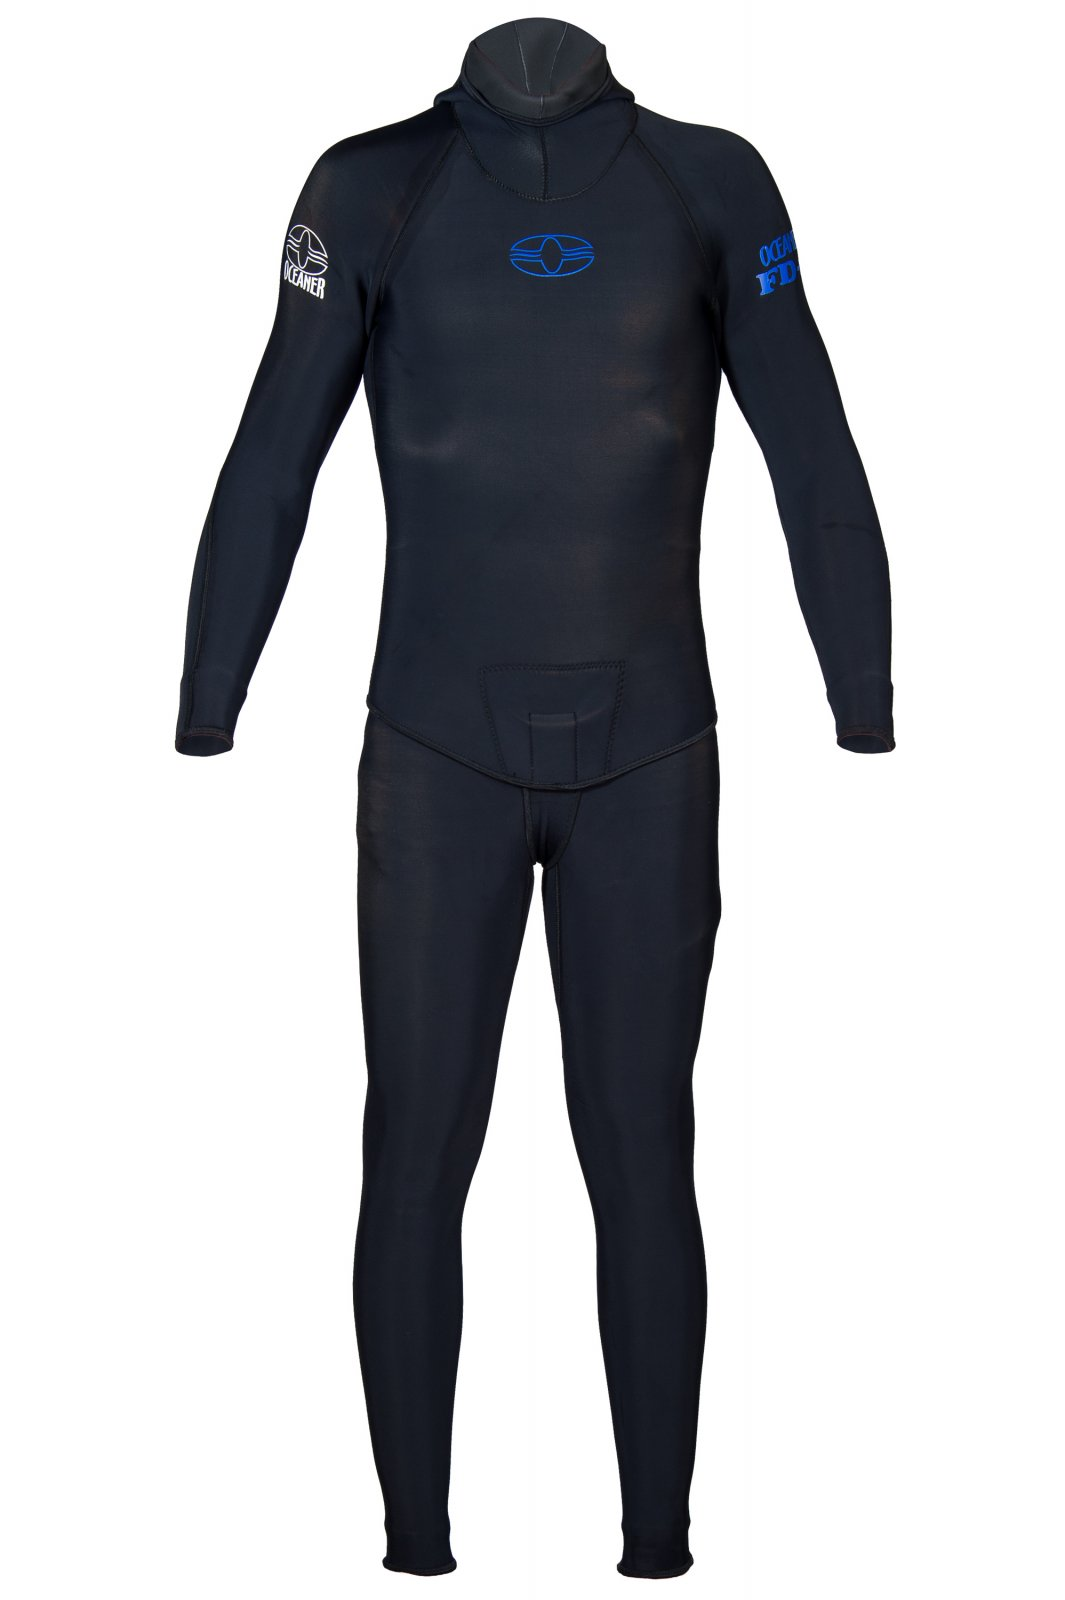 Freediving Oceaner FD-S Wetsuit Men's 3mm